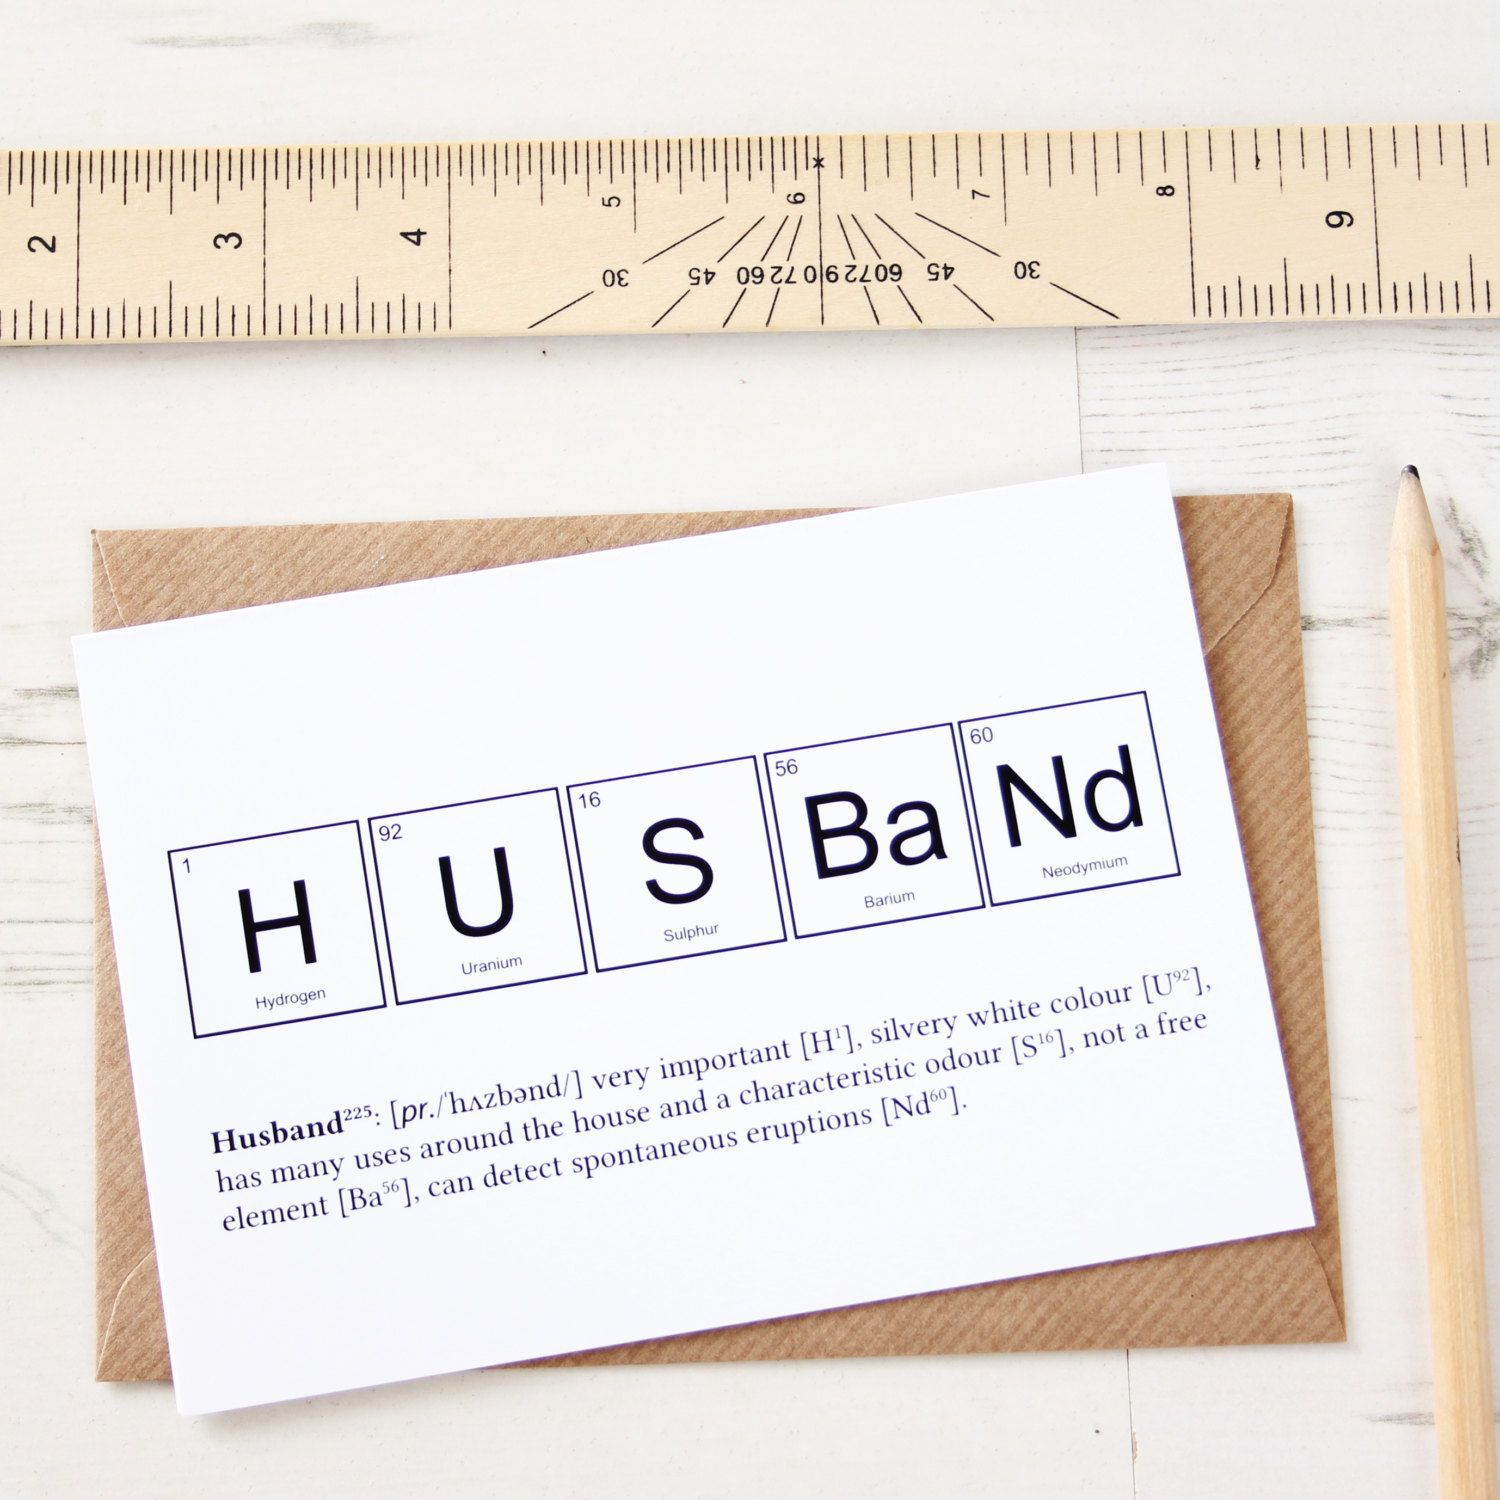 This card depicts the elements of a husband using chemical